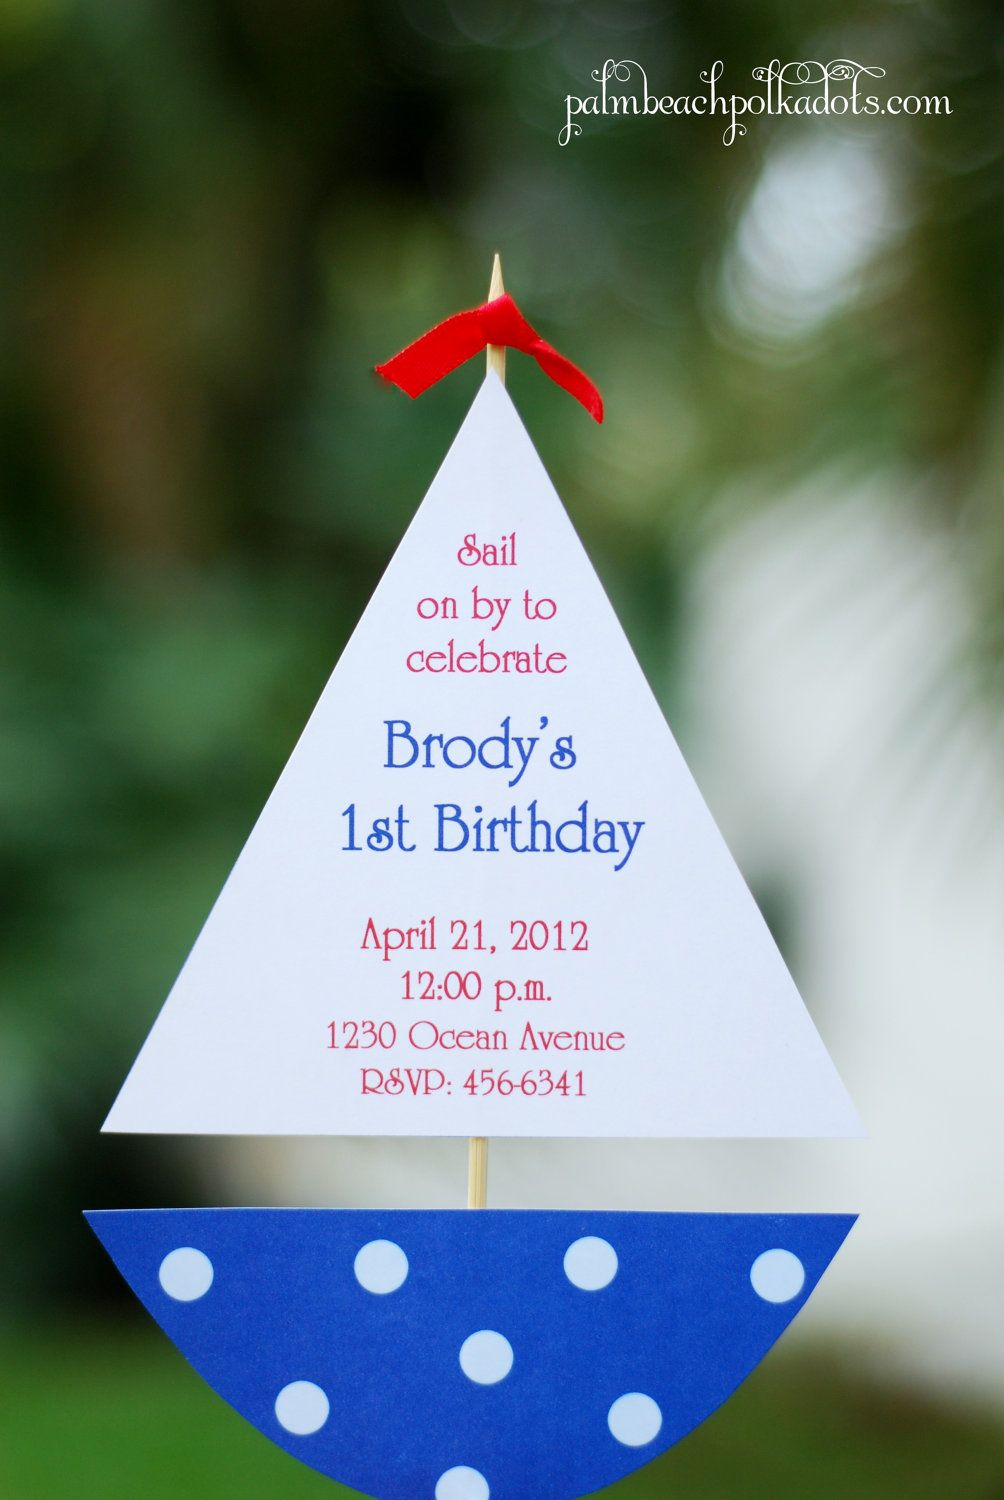 Ornament party invitations - 10 Sailboat Nautical Birthday Or Baby Shower Party Invitations By Palm Beach Polkadots Com